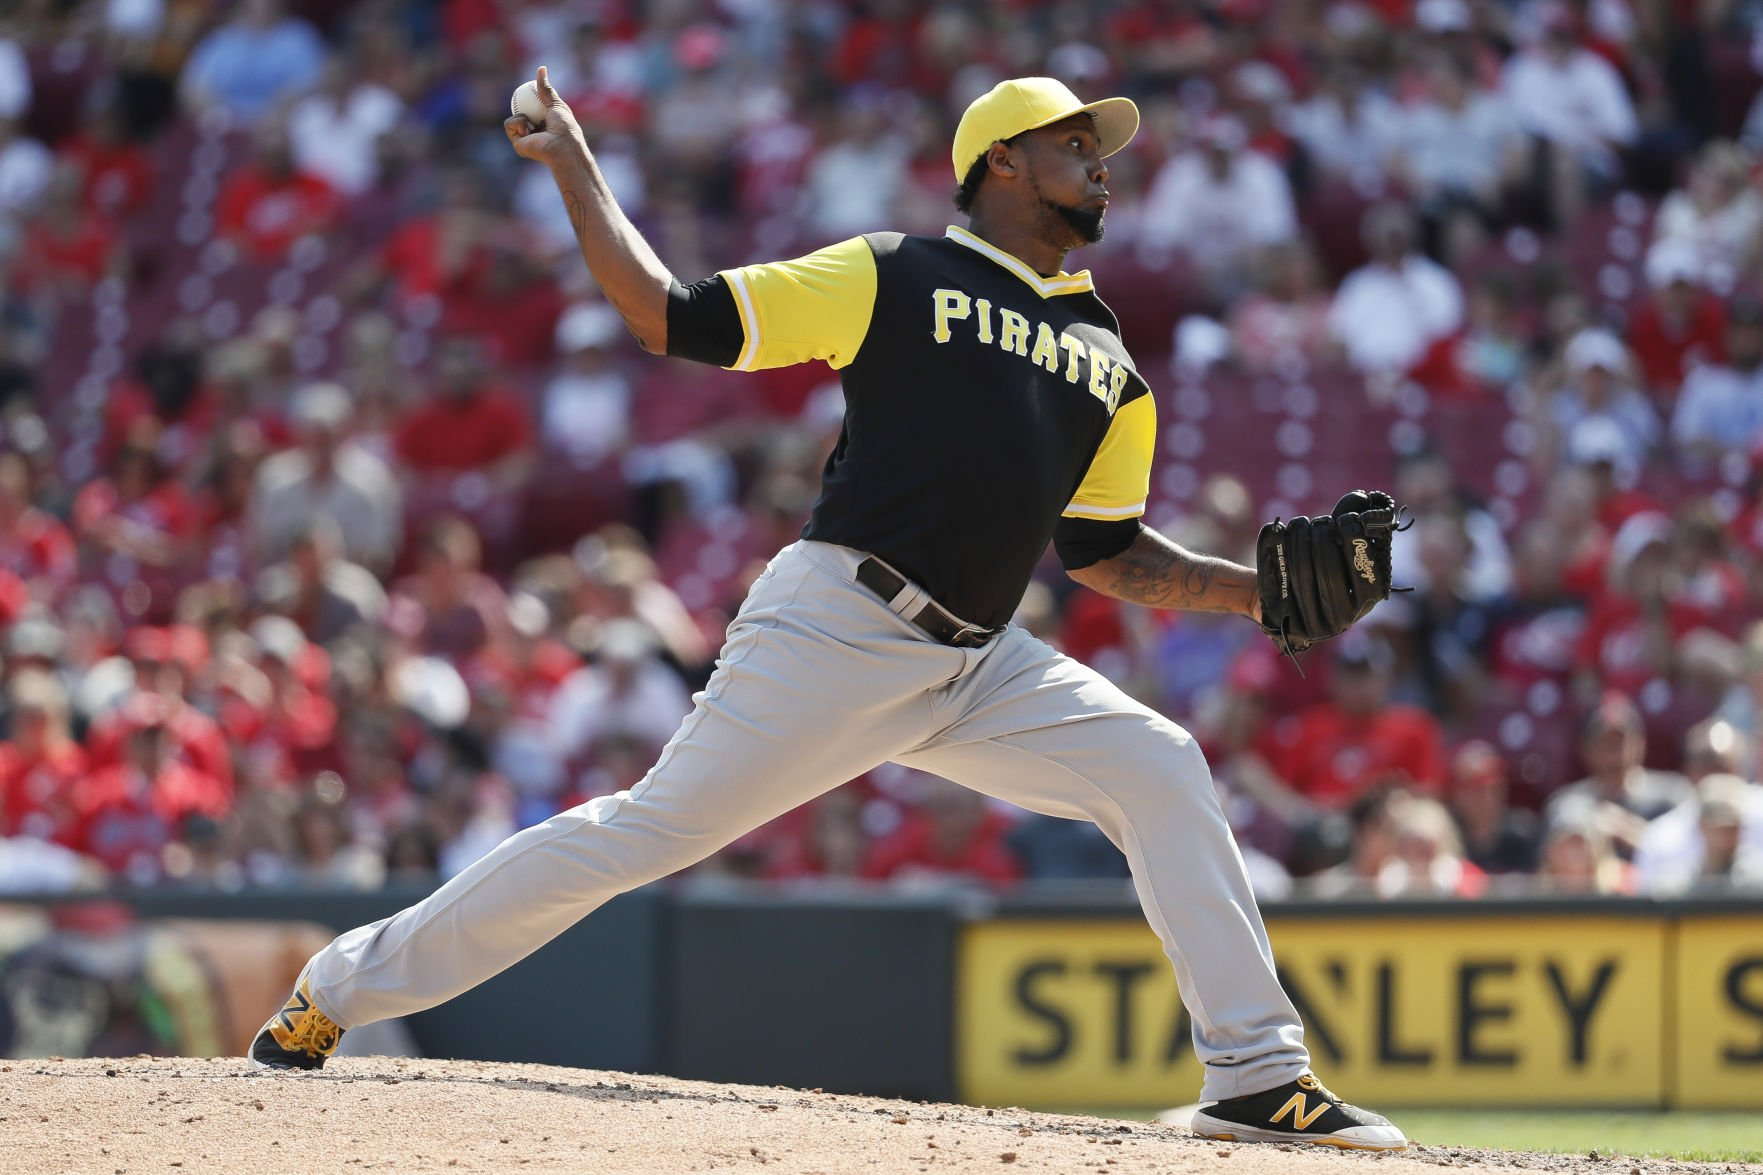 Phillies claim reliever Juan Nicasio off waivers from Pirates